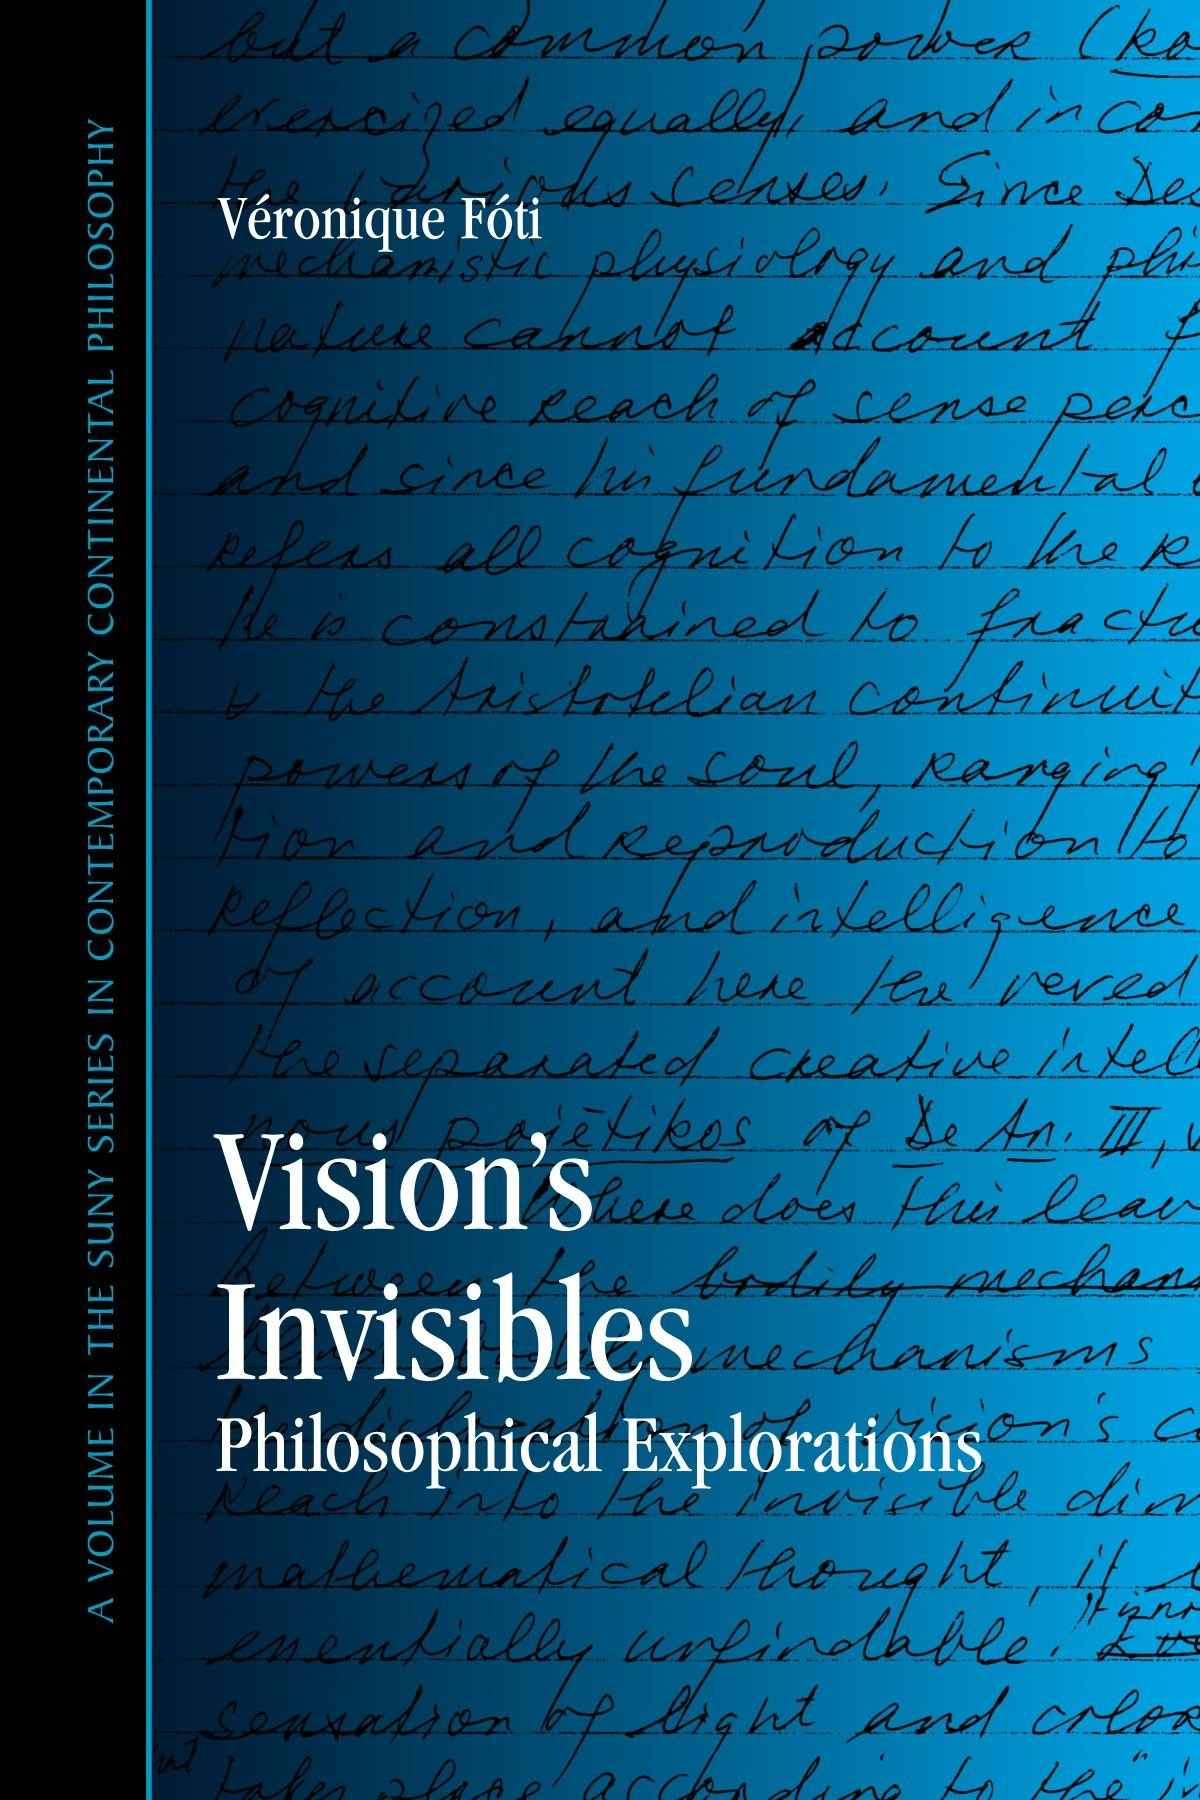 VVeronique M. Foti - Vision's Invisible